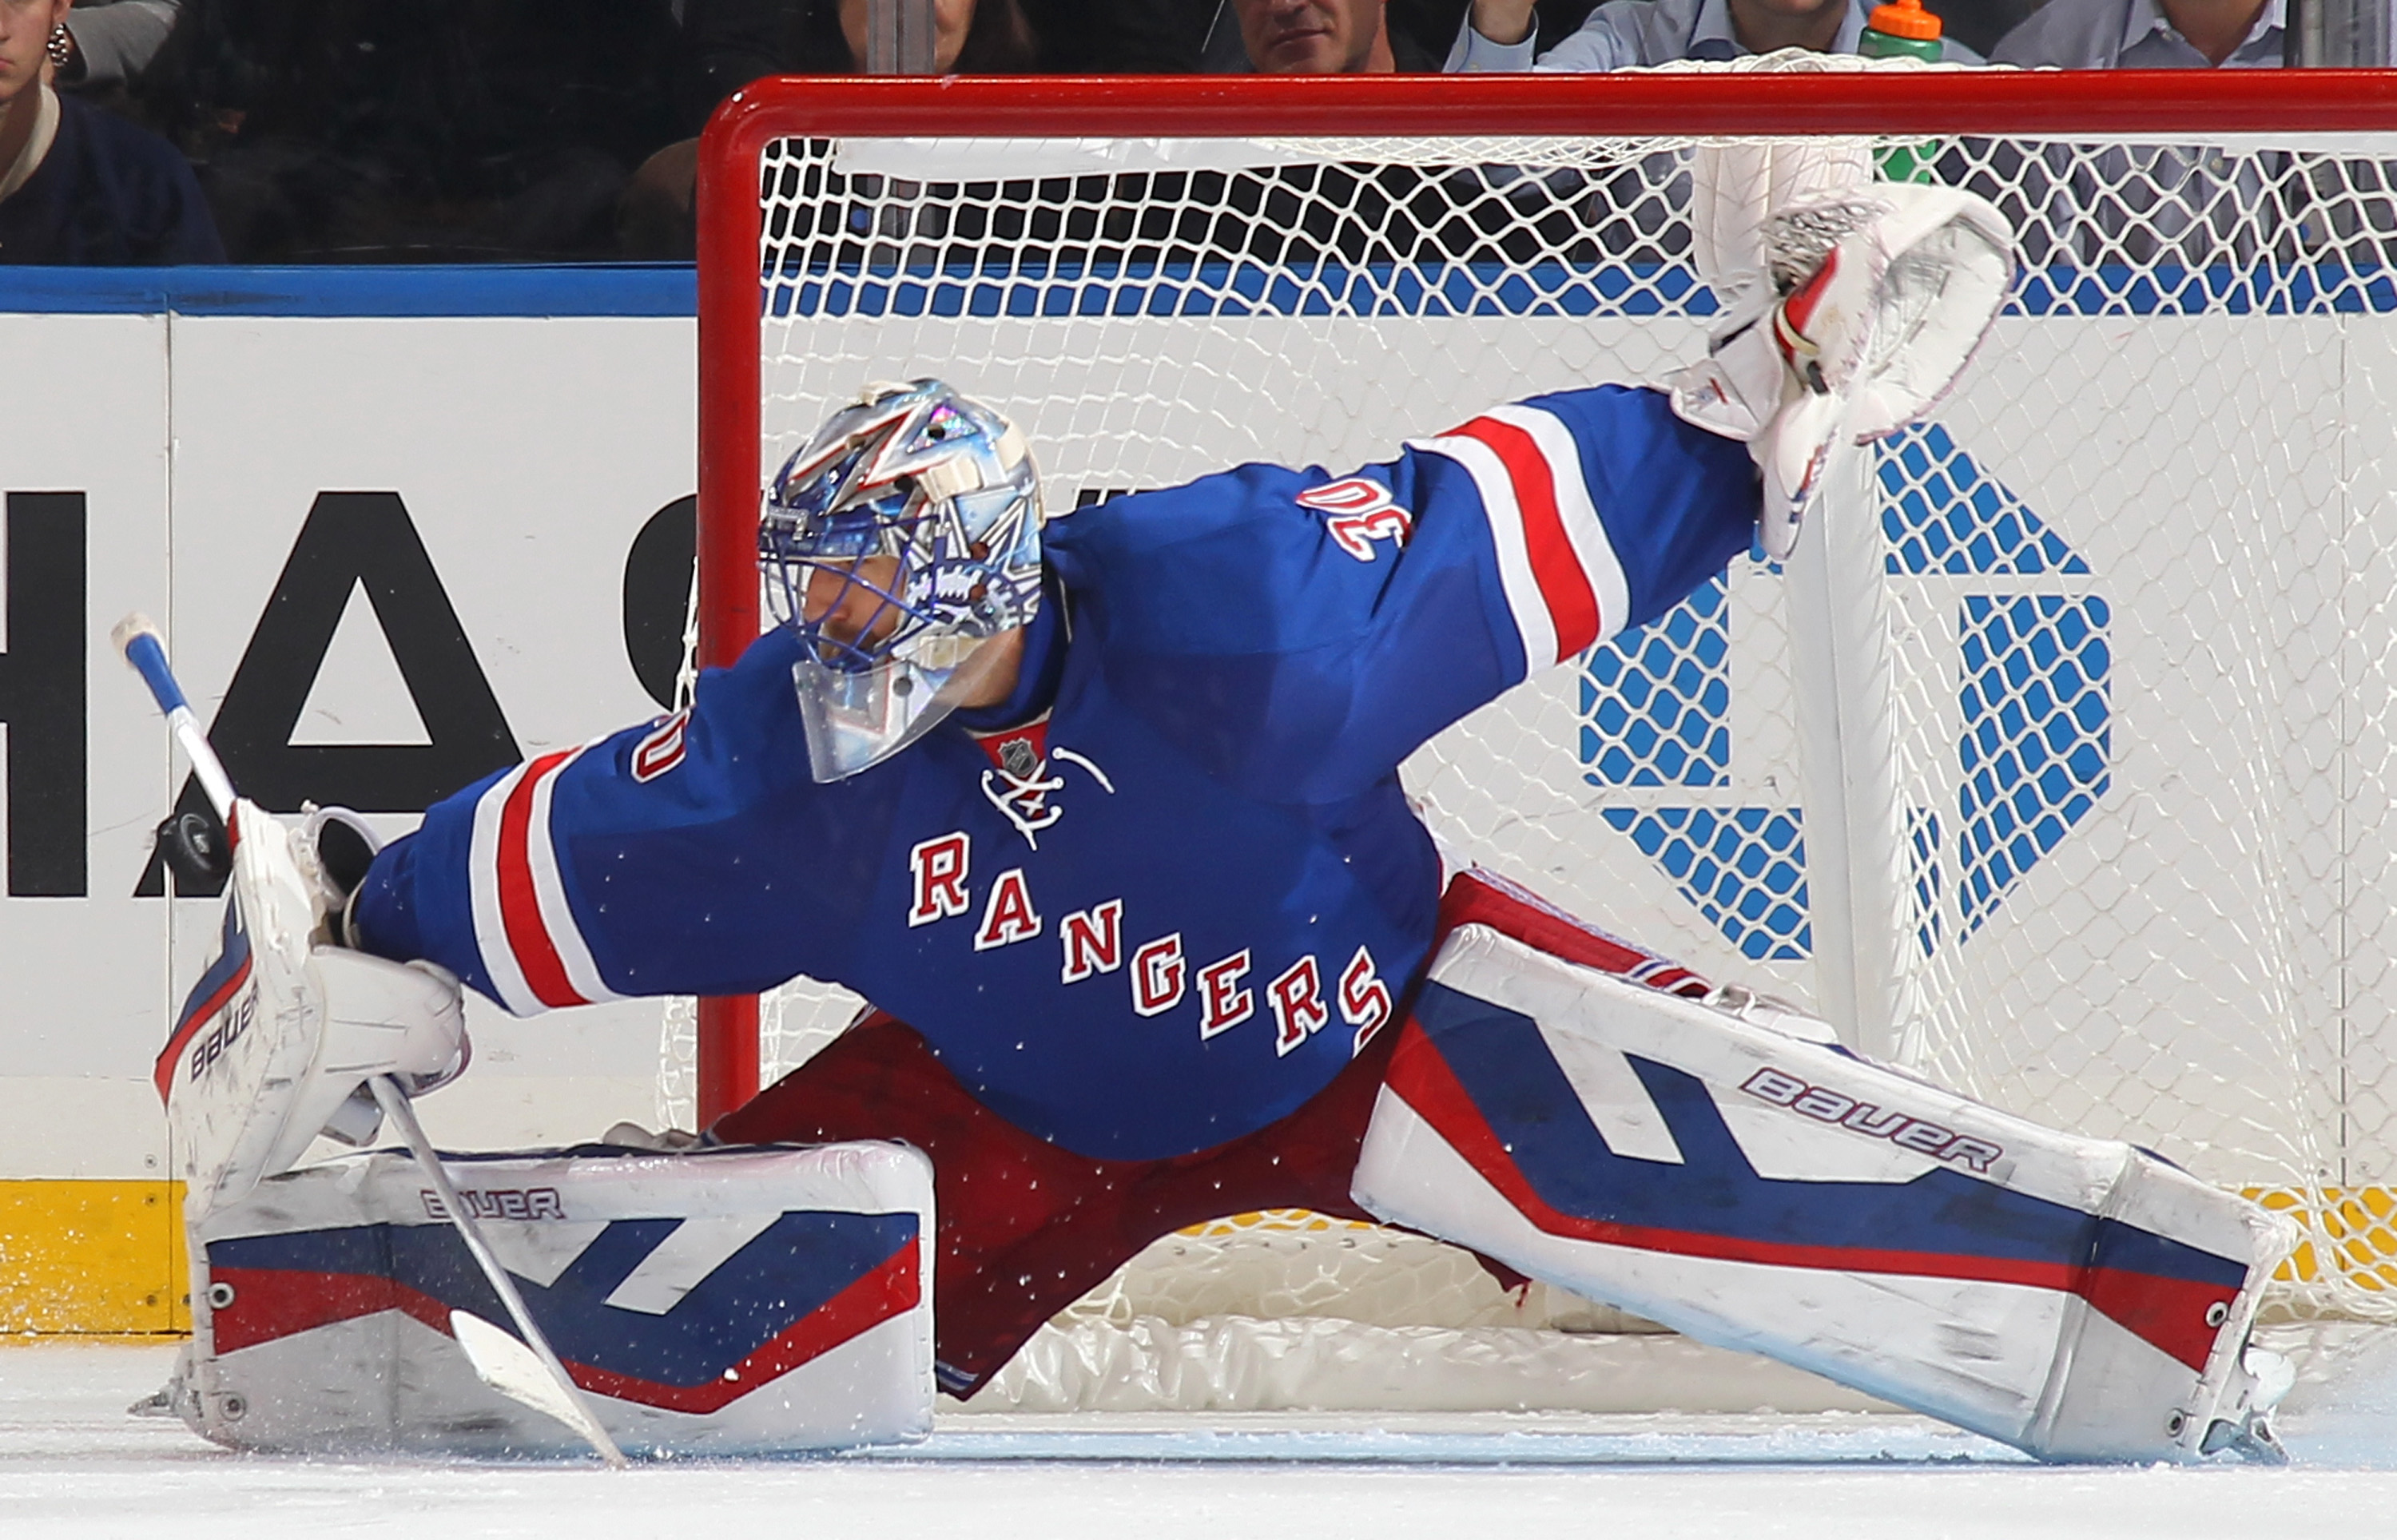 Henrik Lundqvist #30 of the New York Rangers makes a blocker save during the shootout against the Carolina Hurricanes at Madison Square Garden on October 16, 2014 in New York City.